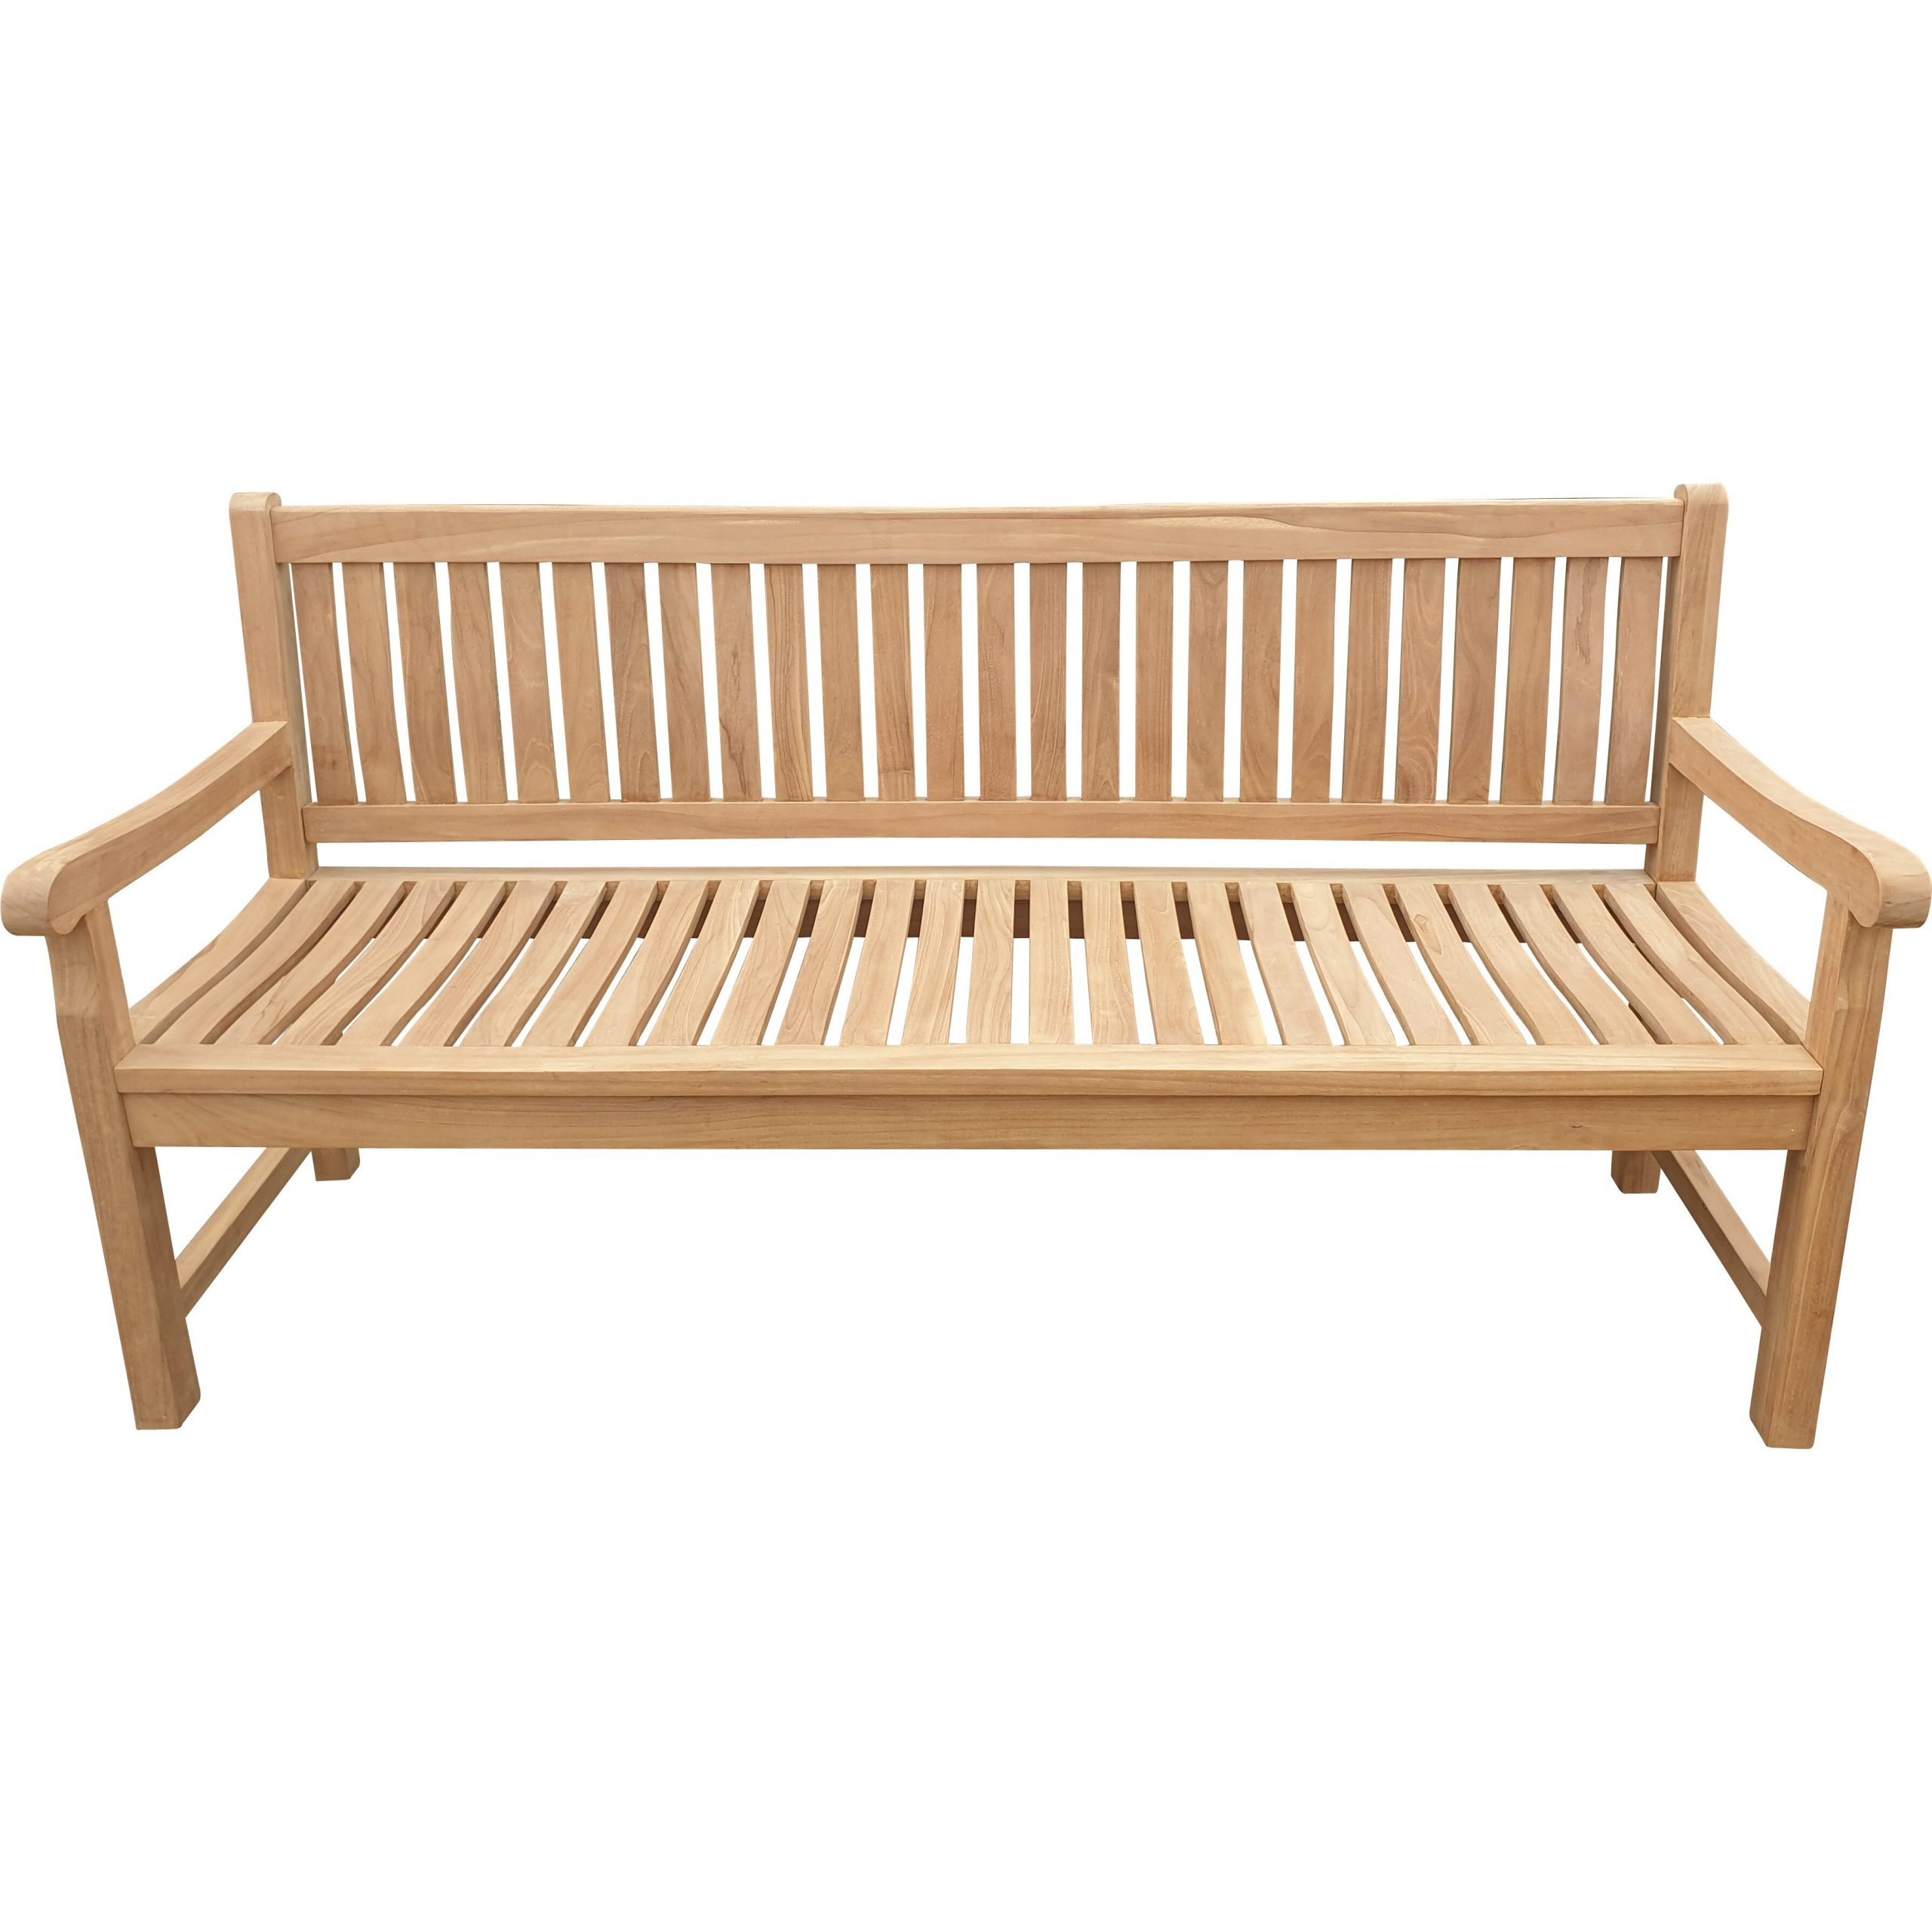 Casson Teak Garden Bench Regarding Wallie Teak Garden Benches (View 3 of 25)